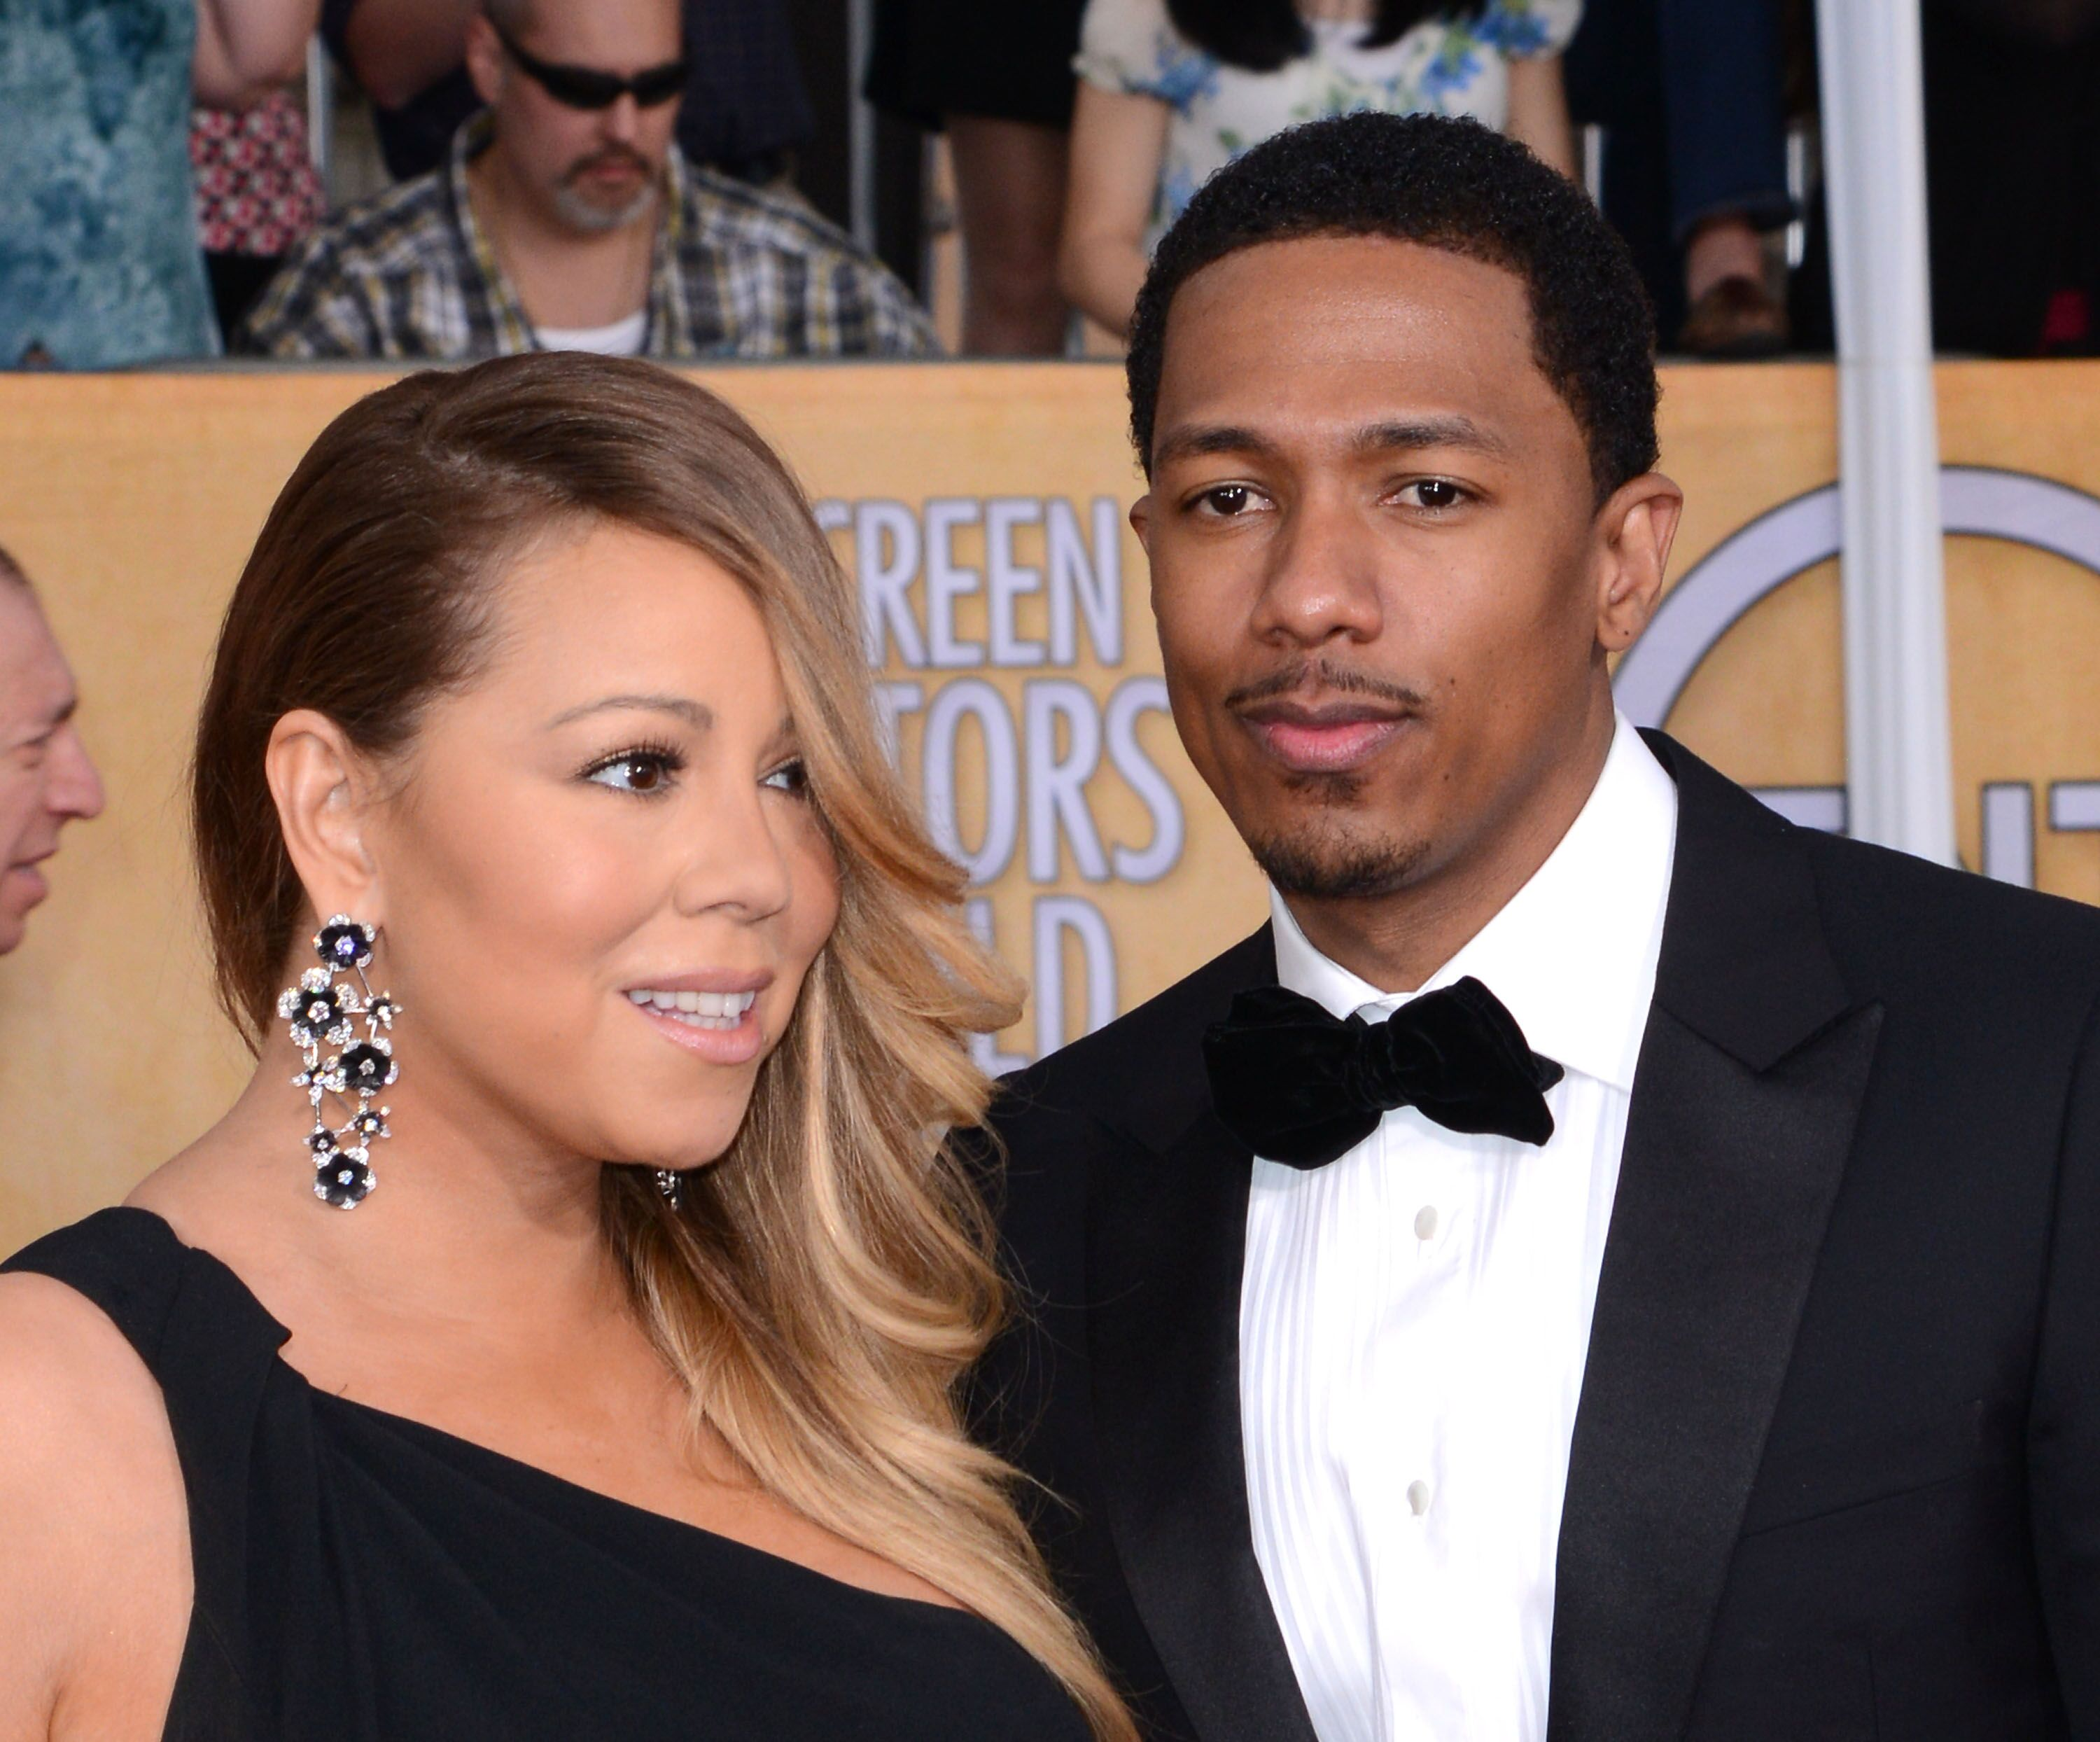 Mariah Carey and Nick Cannon at the Screen Actors' Guild Awards | Source: Getty Images/GlobalImagesUkraine